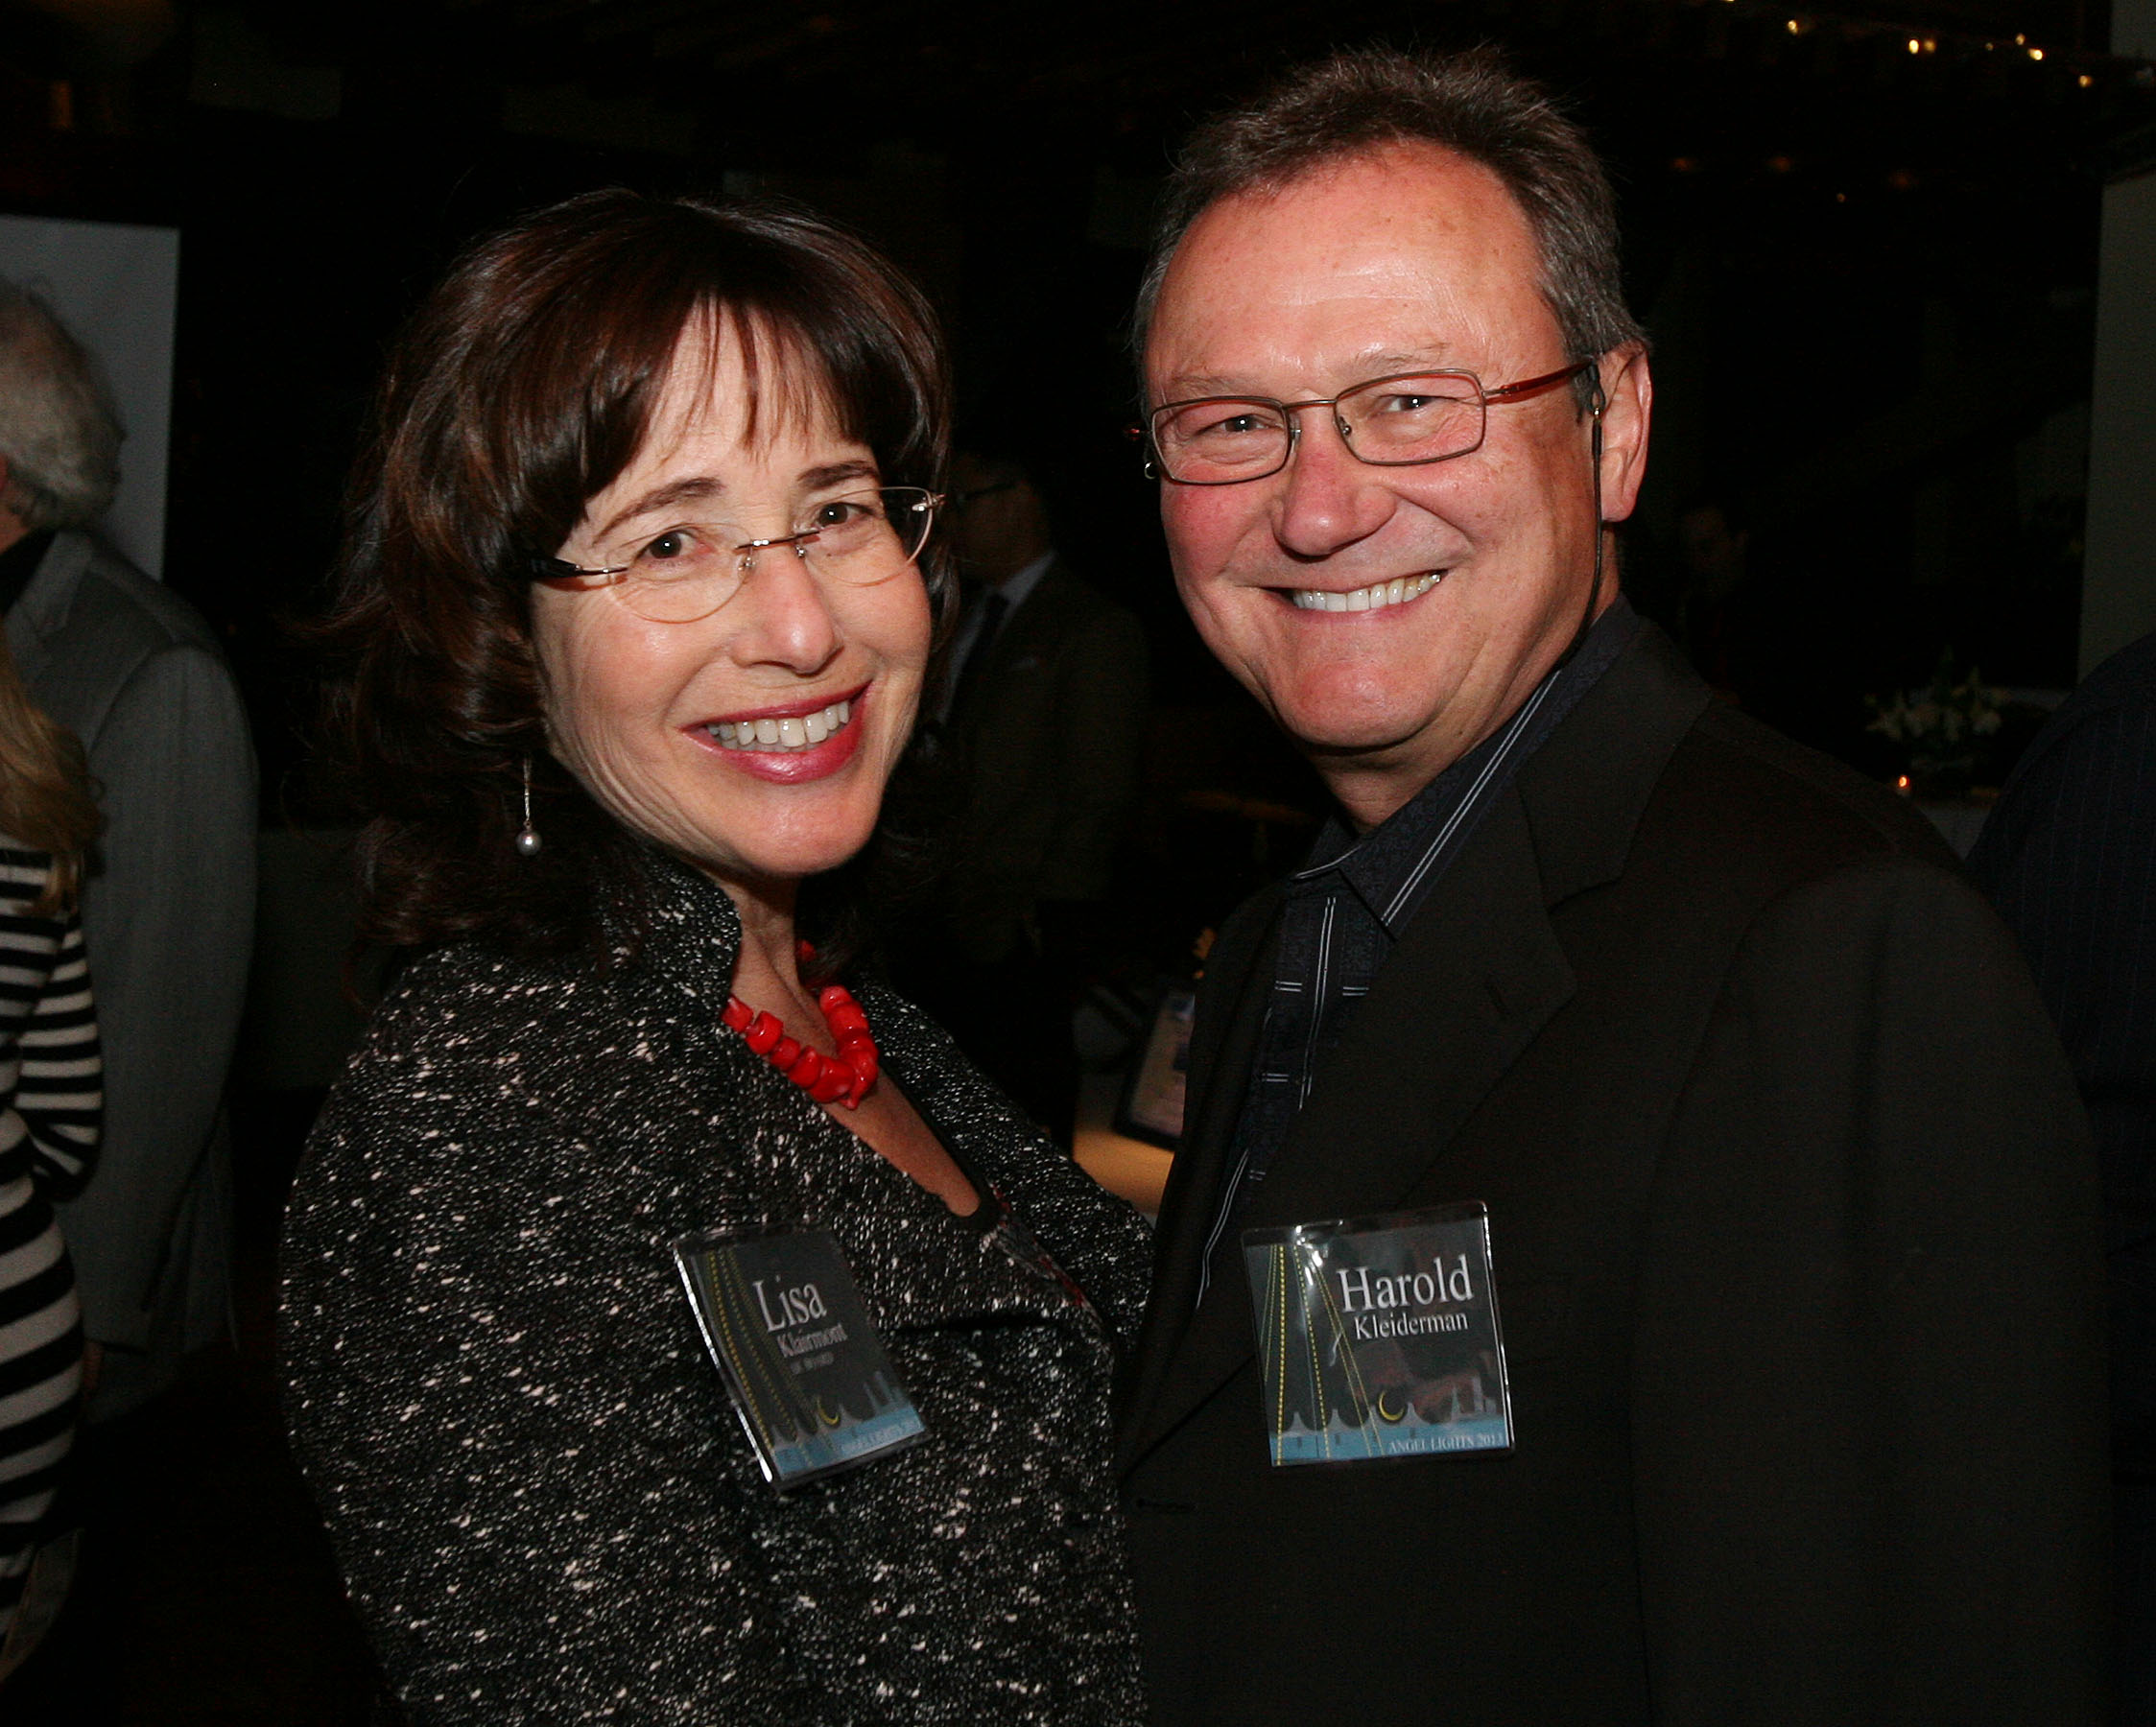 Lisa Klairmont - AIC Board of Directors and Harold Kleiderman